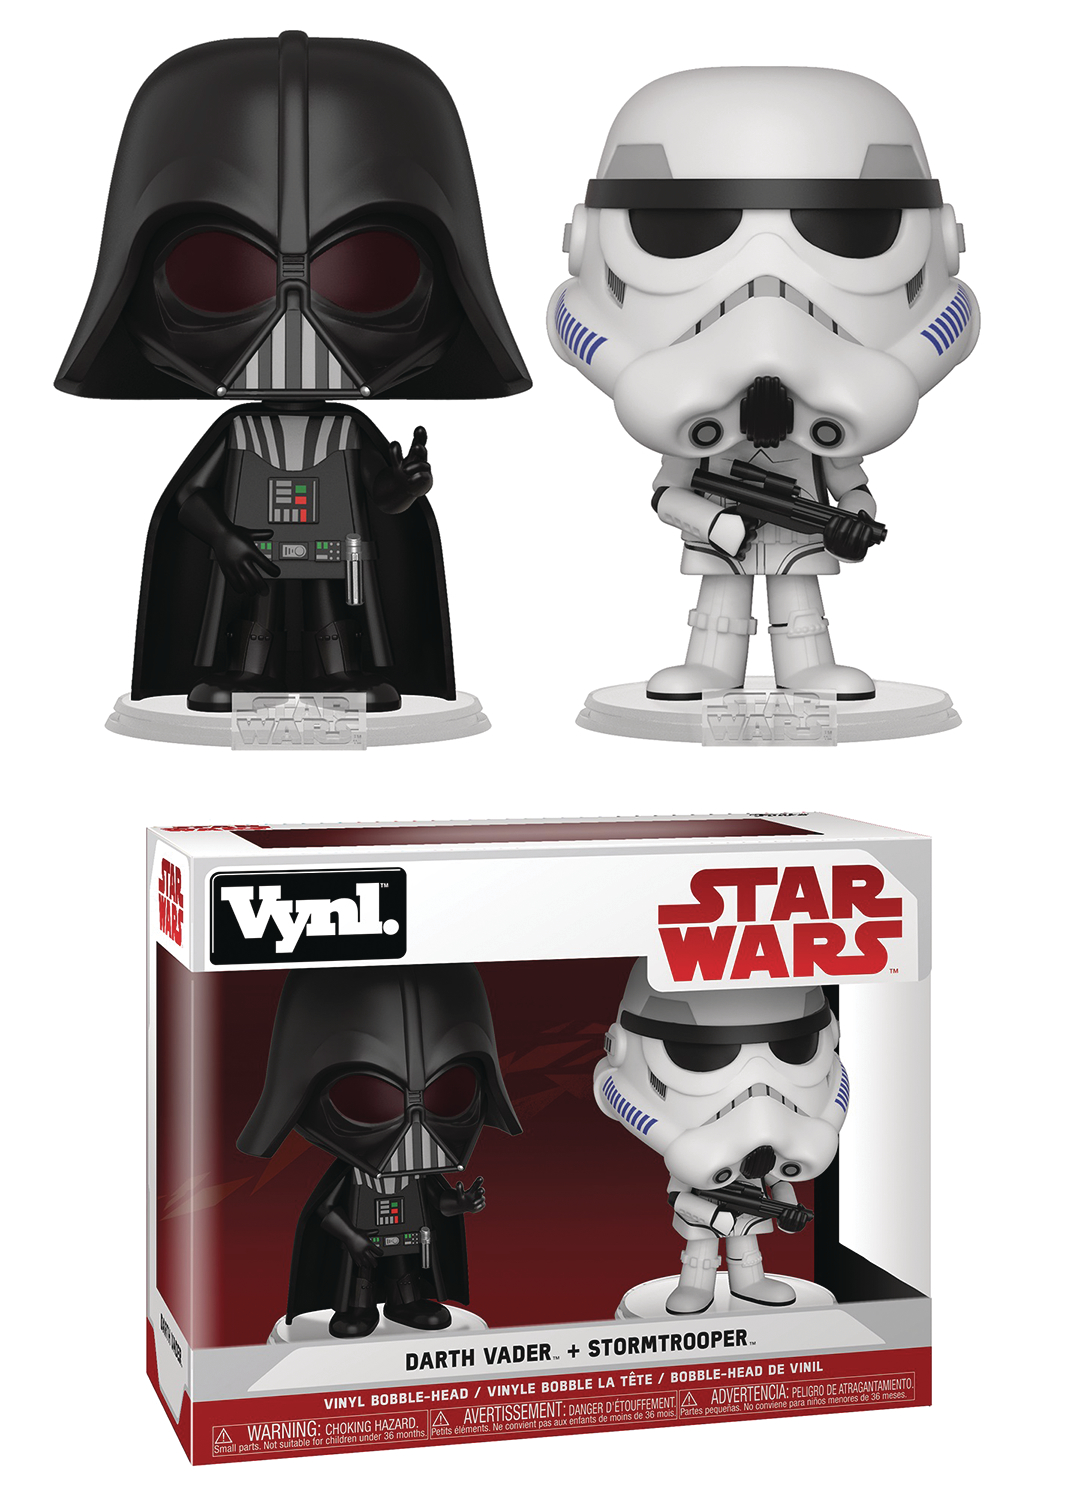 VYNL STAR WARS DARTH VADER & STORMTROOPER VIN FIG 2PK